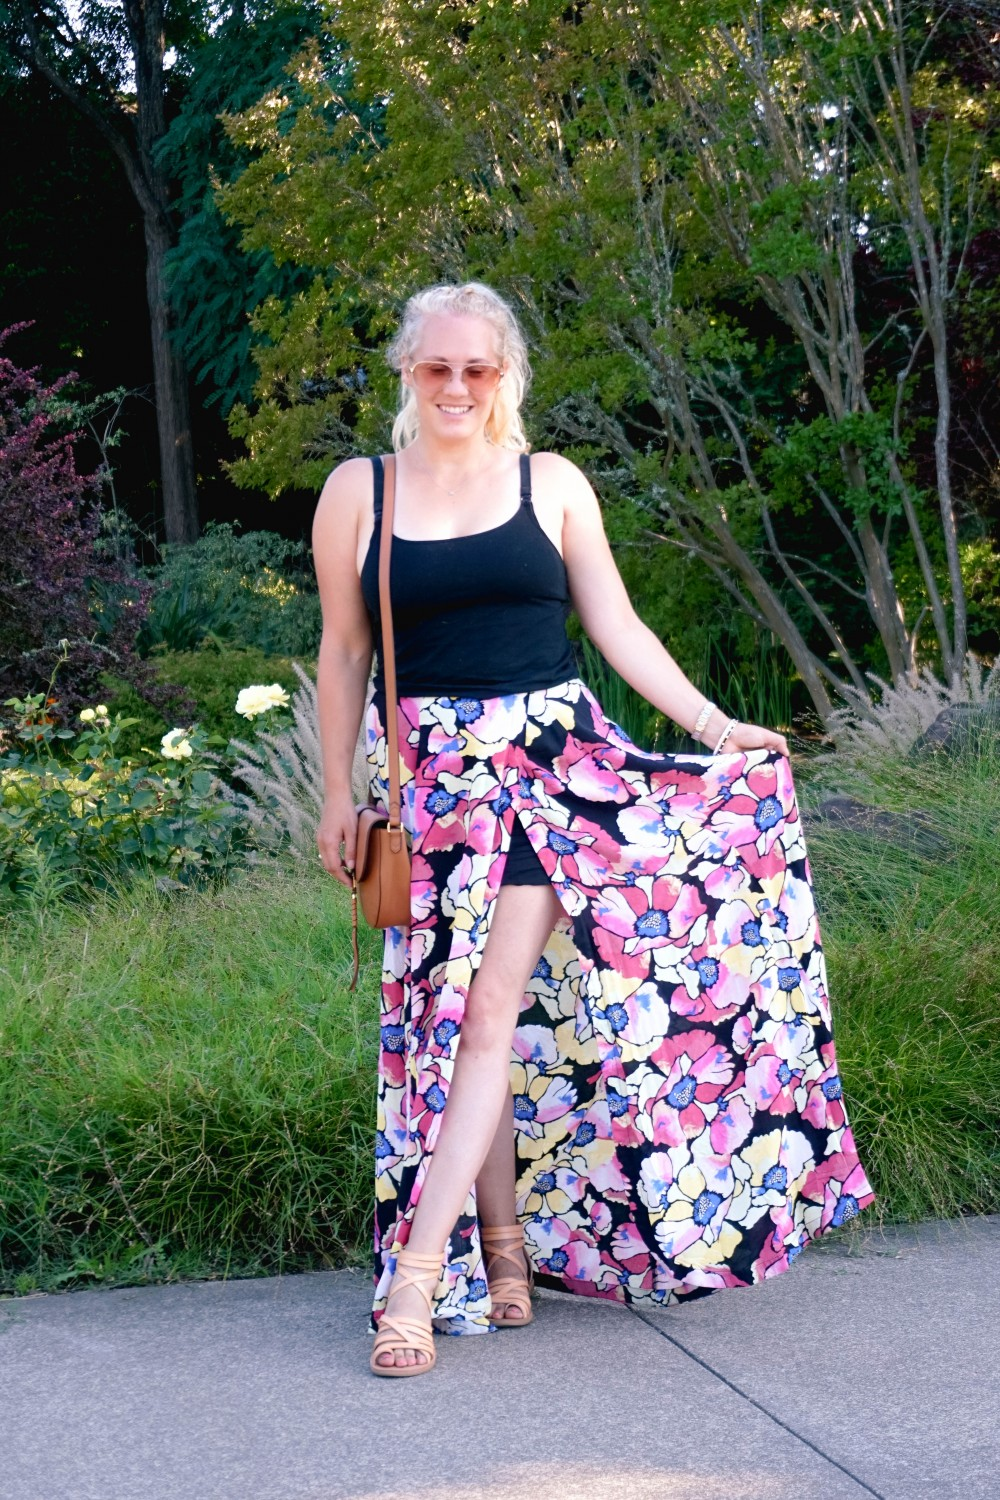 Hot Tropics Floral Maxi Skirt-Free People Floral Maxi Skirt-Outfit Inspiration-Wine Country-Mom Style-Nursing Top-Have Need Want